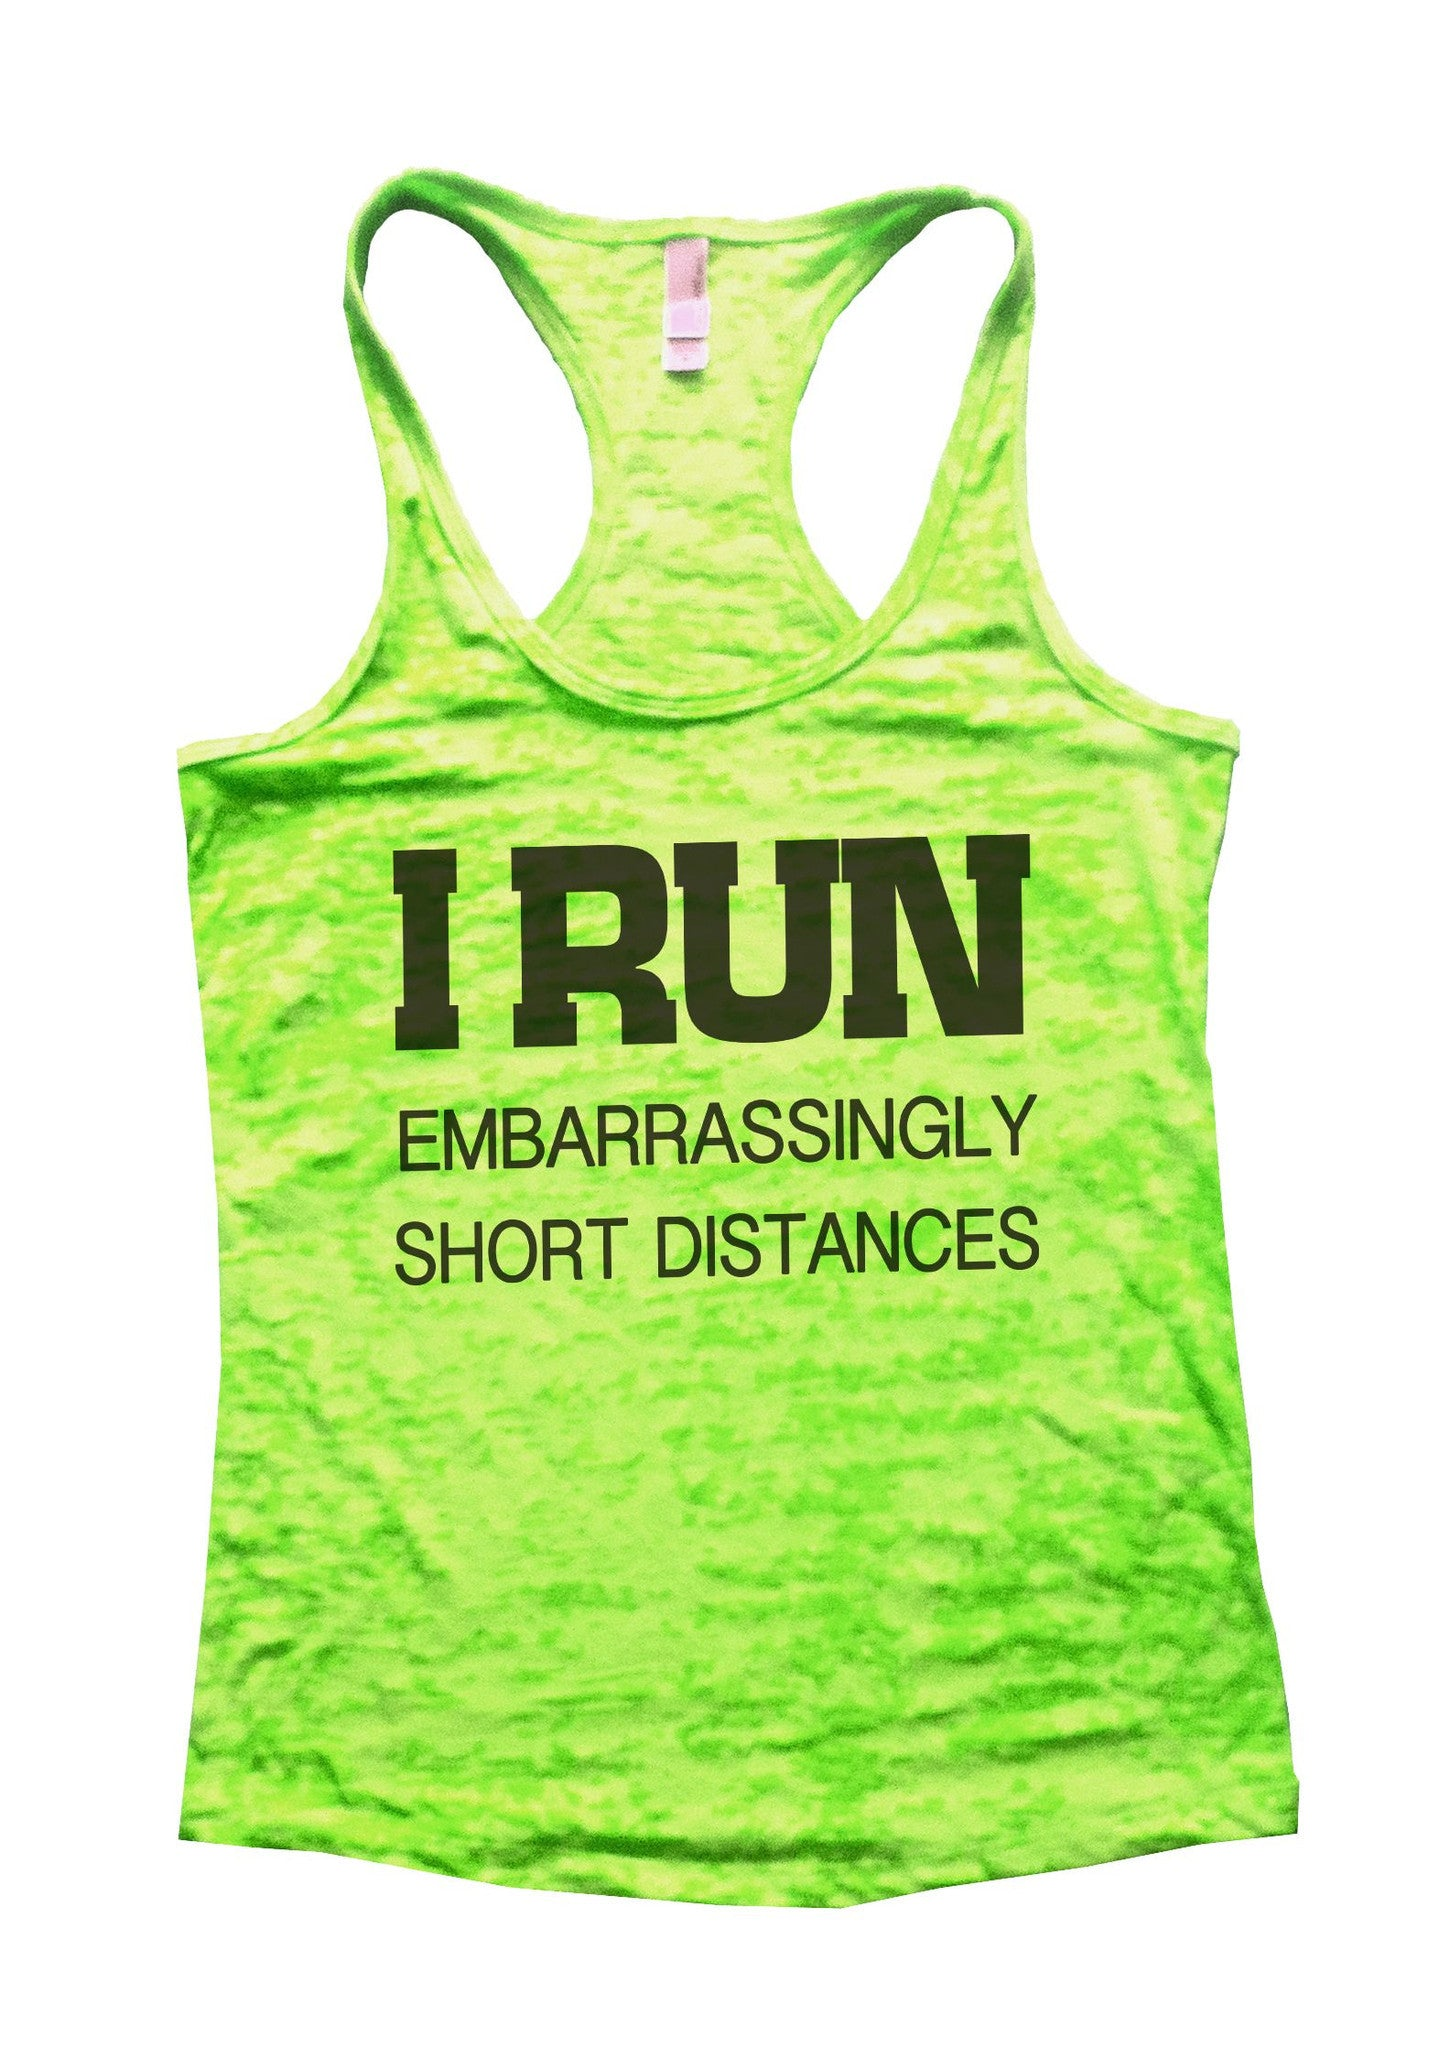 I Run Embarrassingly Short Distances Burnout Tank Top By BurnoutTankTops.com - 733 - Funny Shirts Tank Tops Burnouts and Triblends  - 1